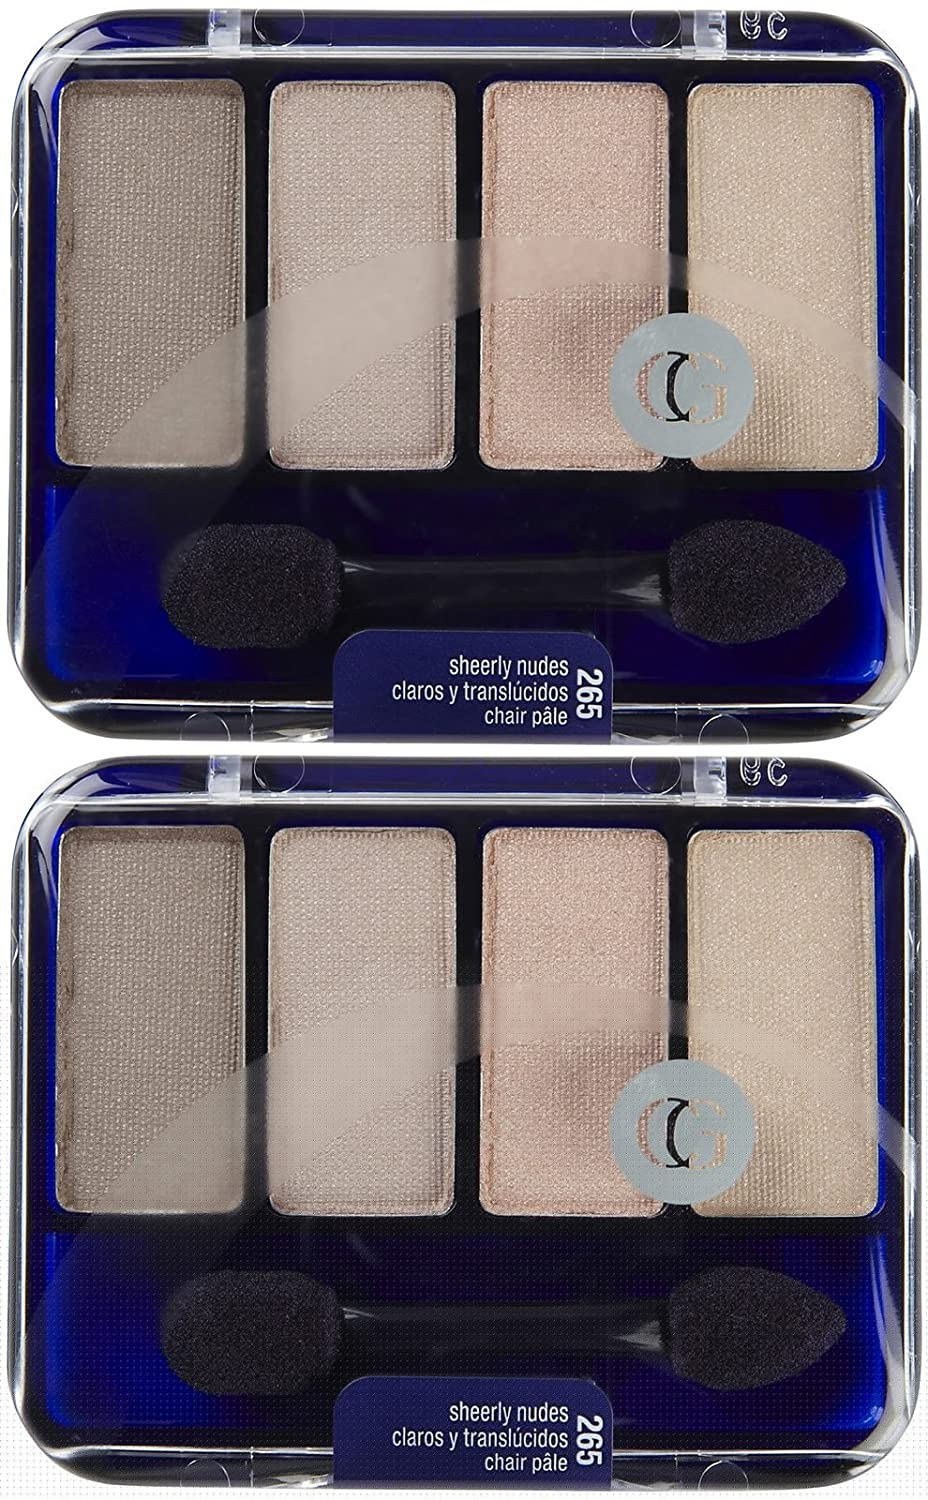 CoverGirl Eye Enhancers 4- Kit Shadows - Sheerly Nudes (265) - 2 pk by COVERGIRL